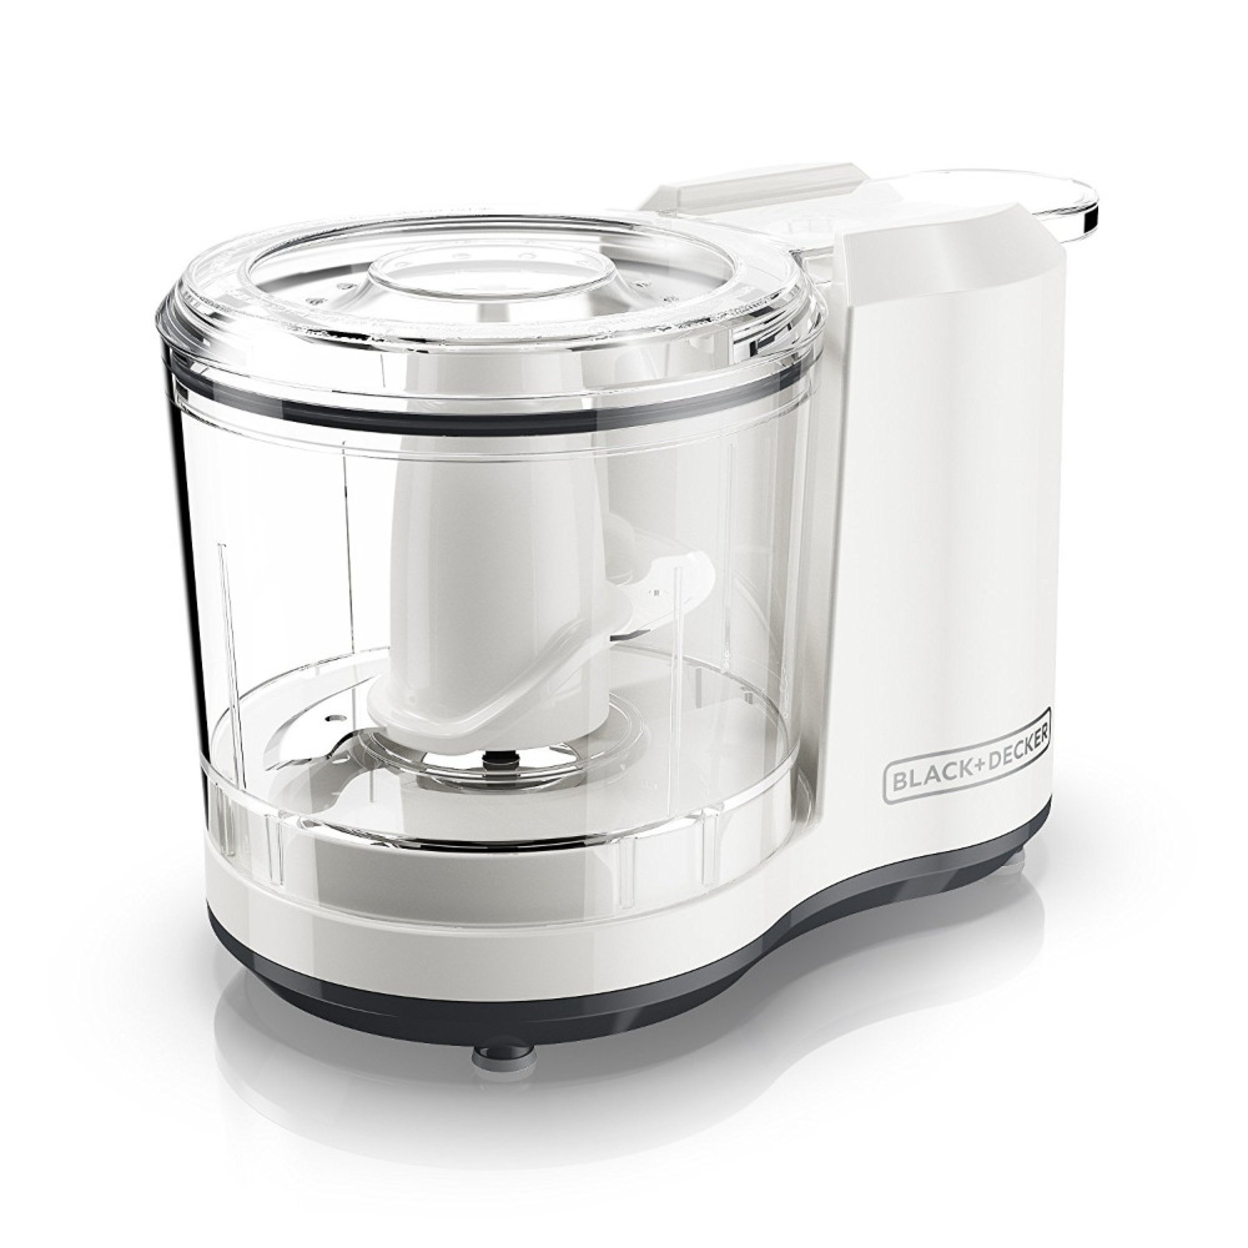 One-Touch 1.5 Cup Capacity Electric Food Chopper with Improved Assembly & Lid 589955fcc98fc433fa23b4e5